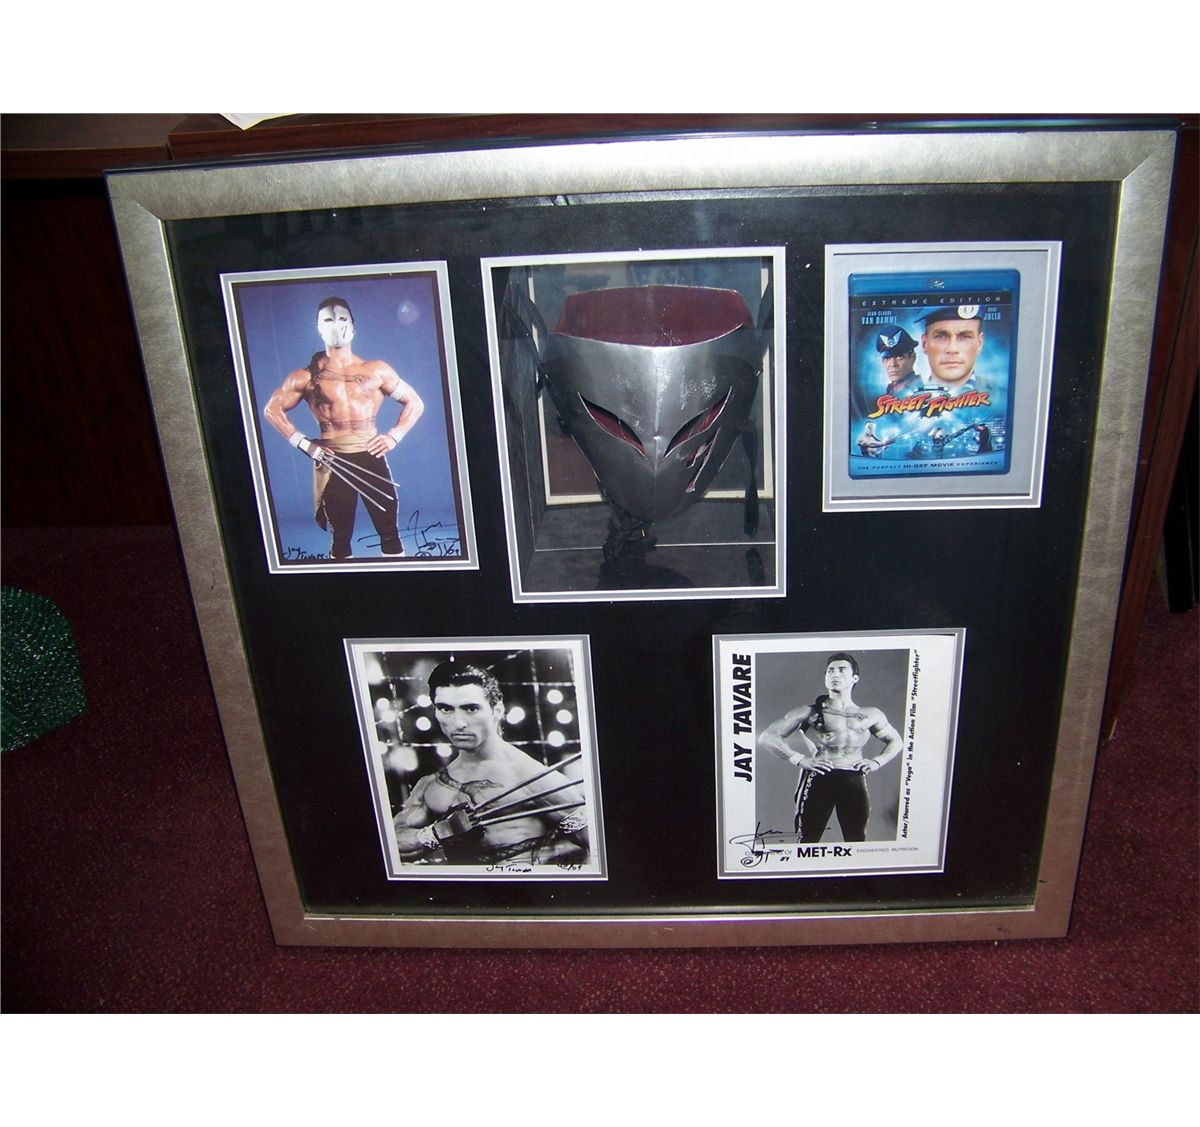 Screen Used Vega Mask From Street Fighter 1994 Movie Mask Glossy Photos Signed By Actor Jay Tavare